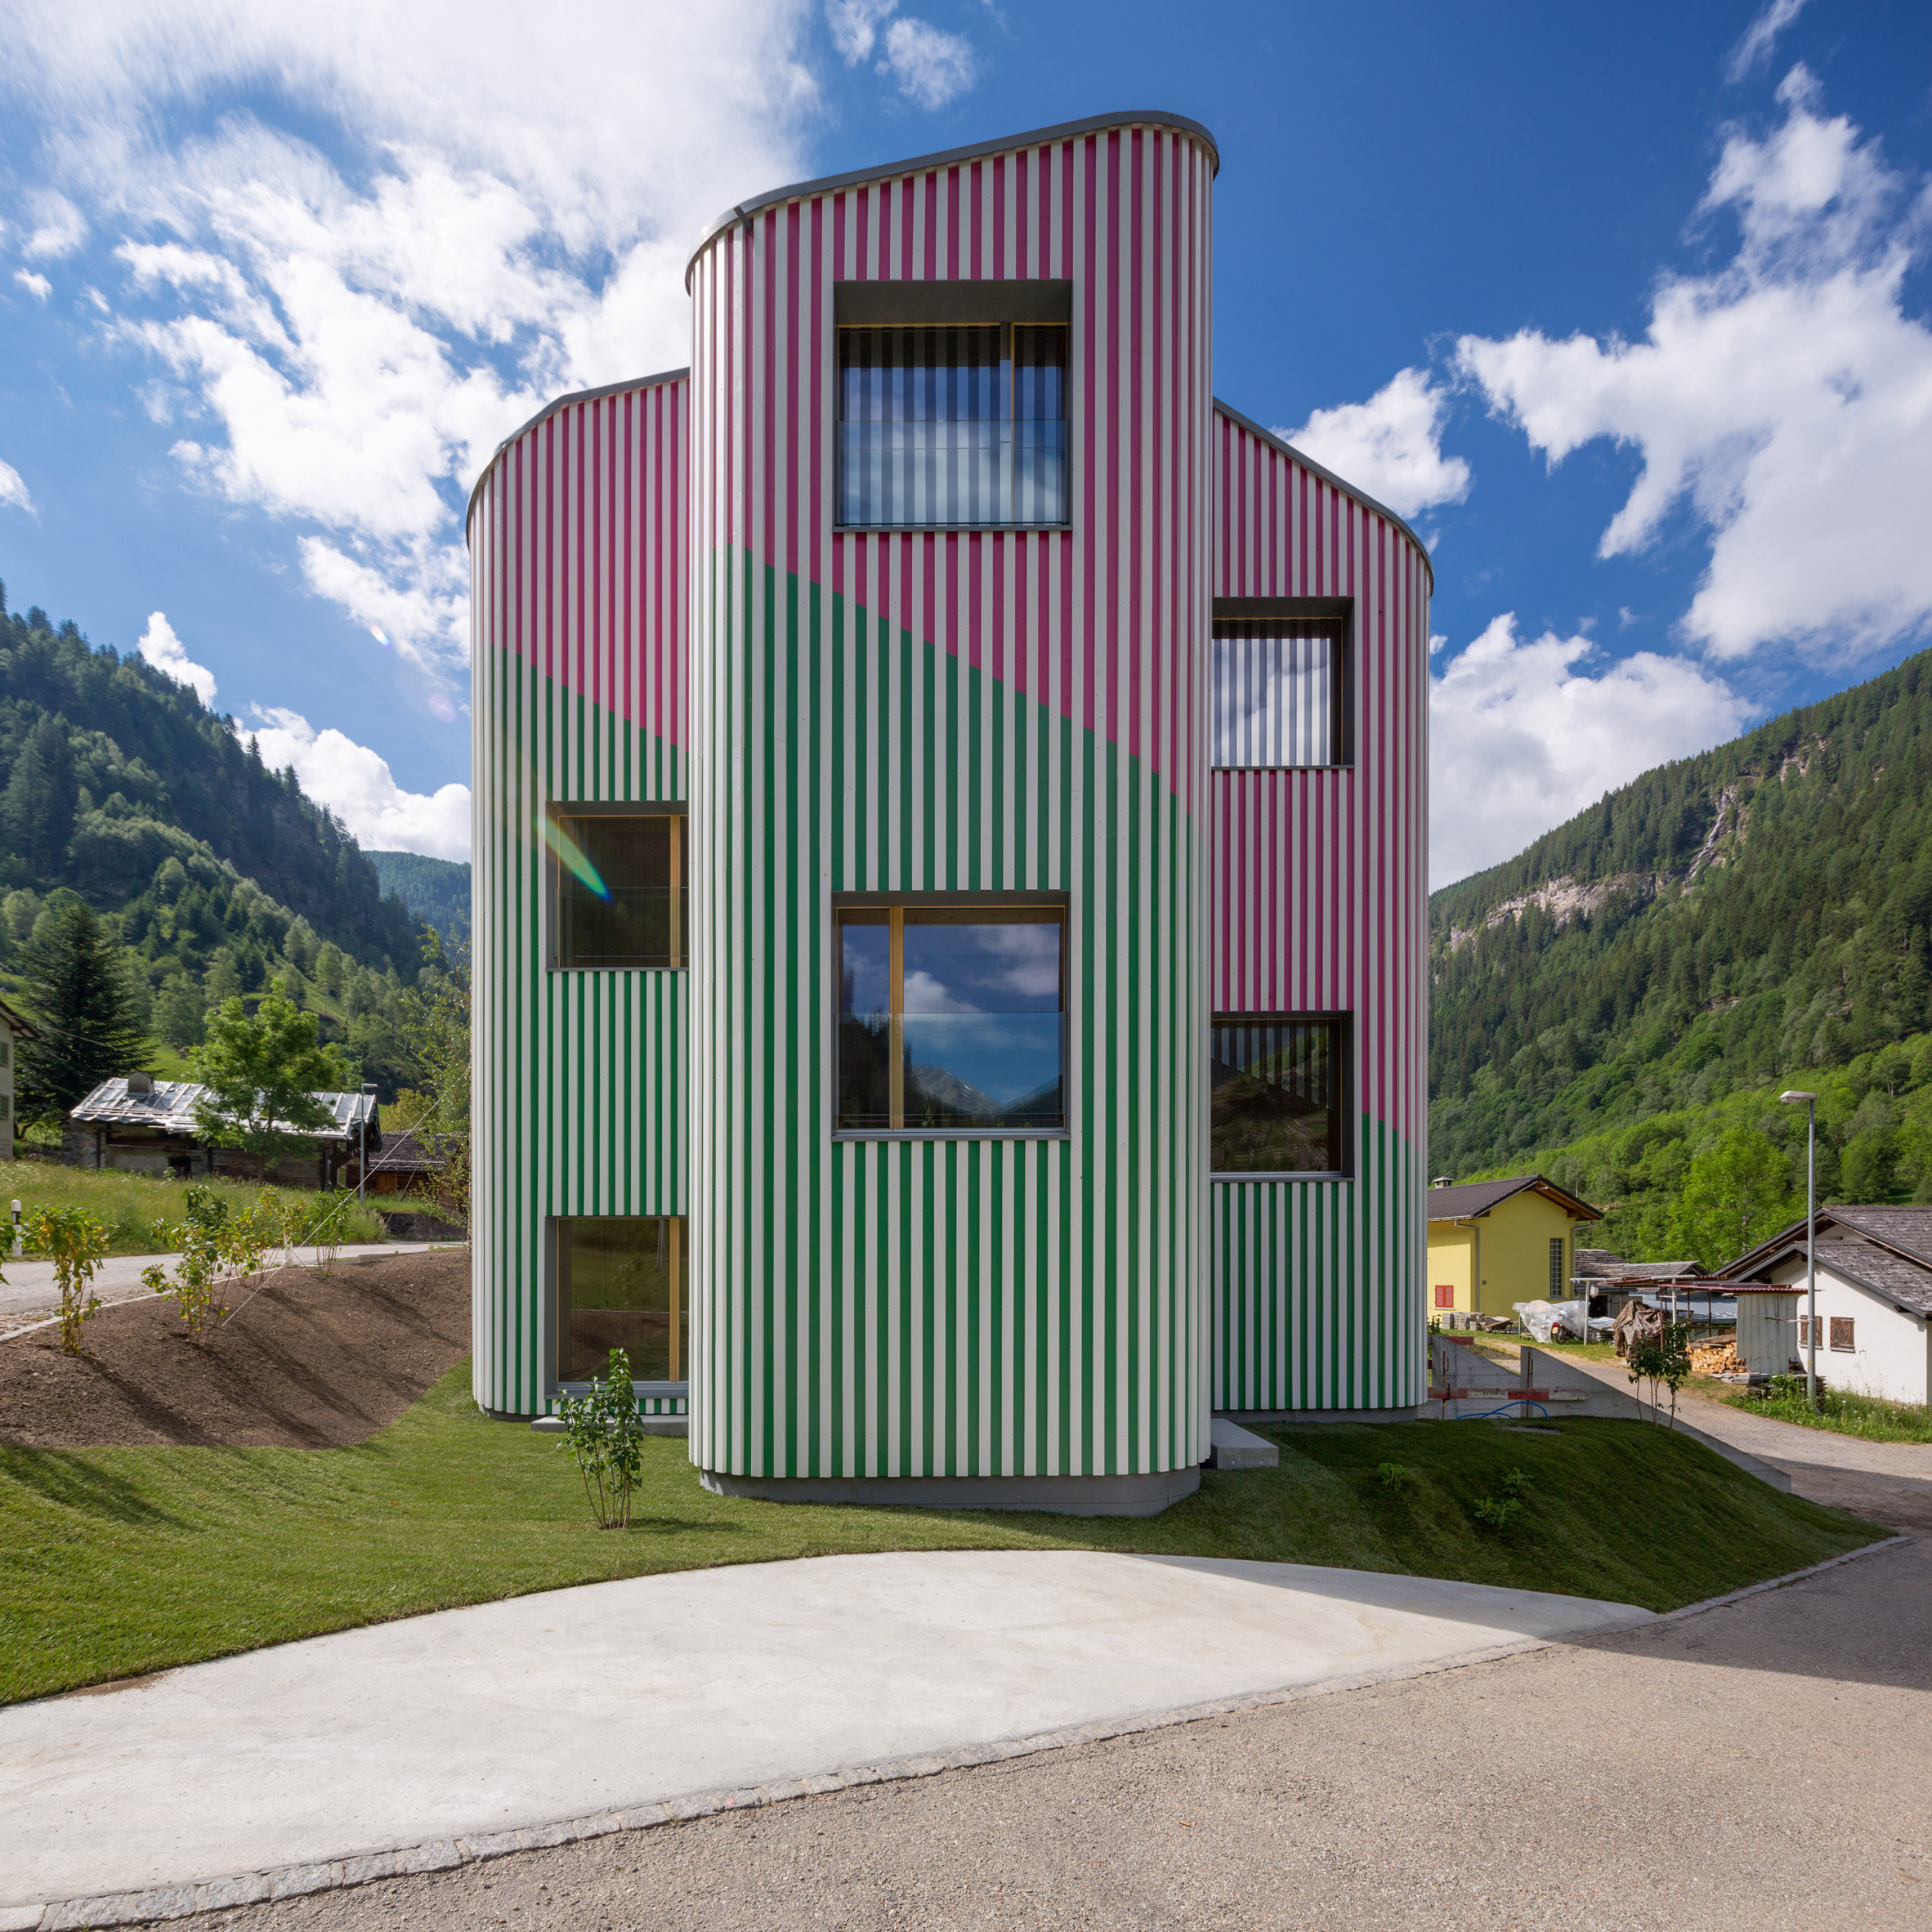 House design and architecture in Switzerland | Dezeen